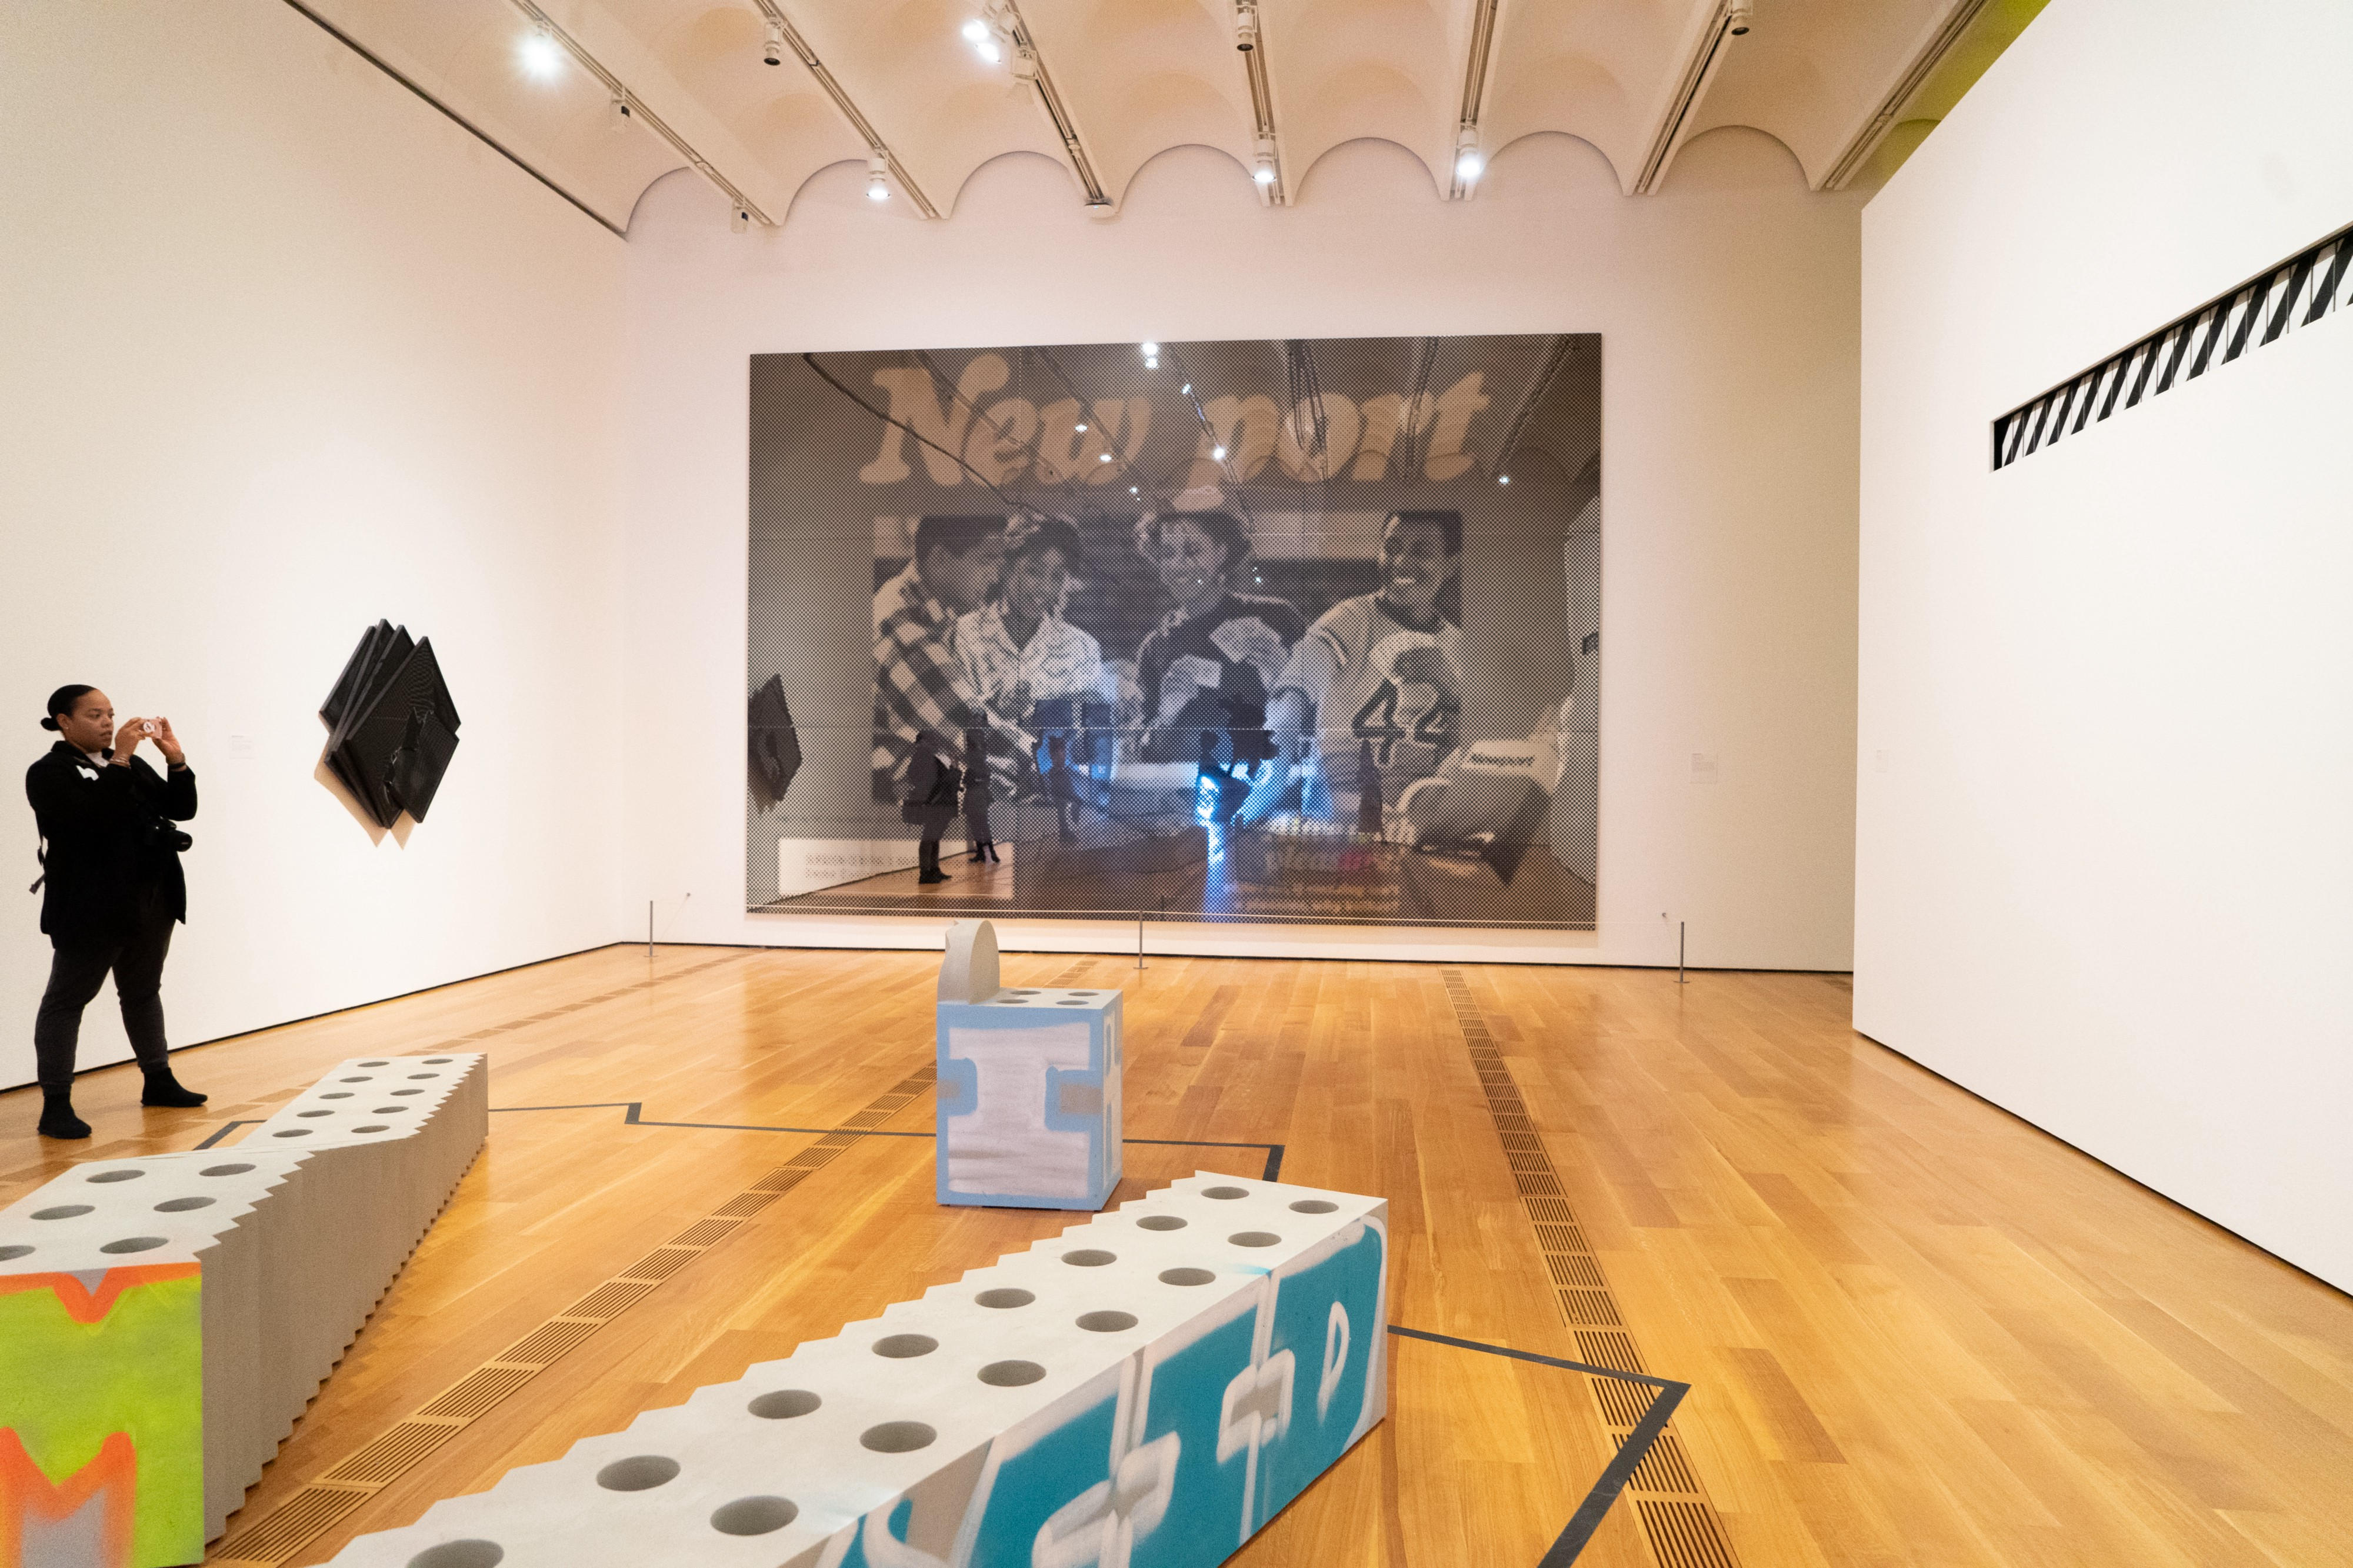 Installation view of works on the floor and wall at the Virgil Abloh exhibition at the High Museum of Art.